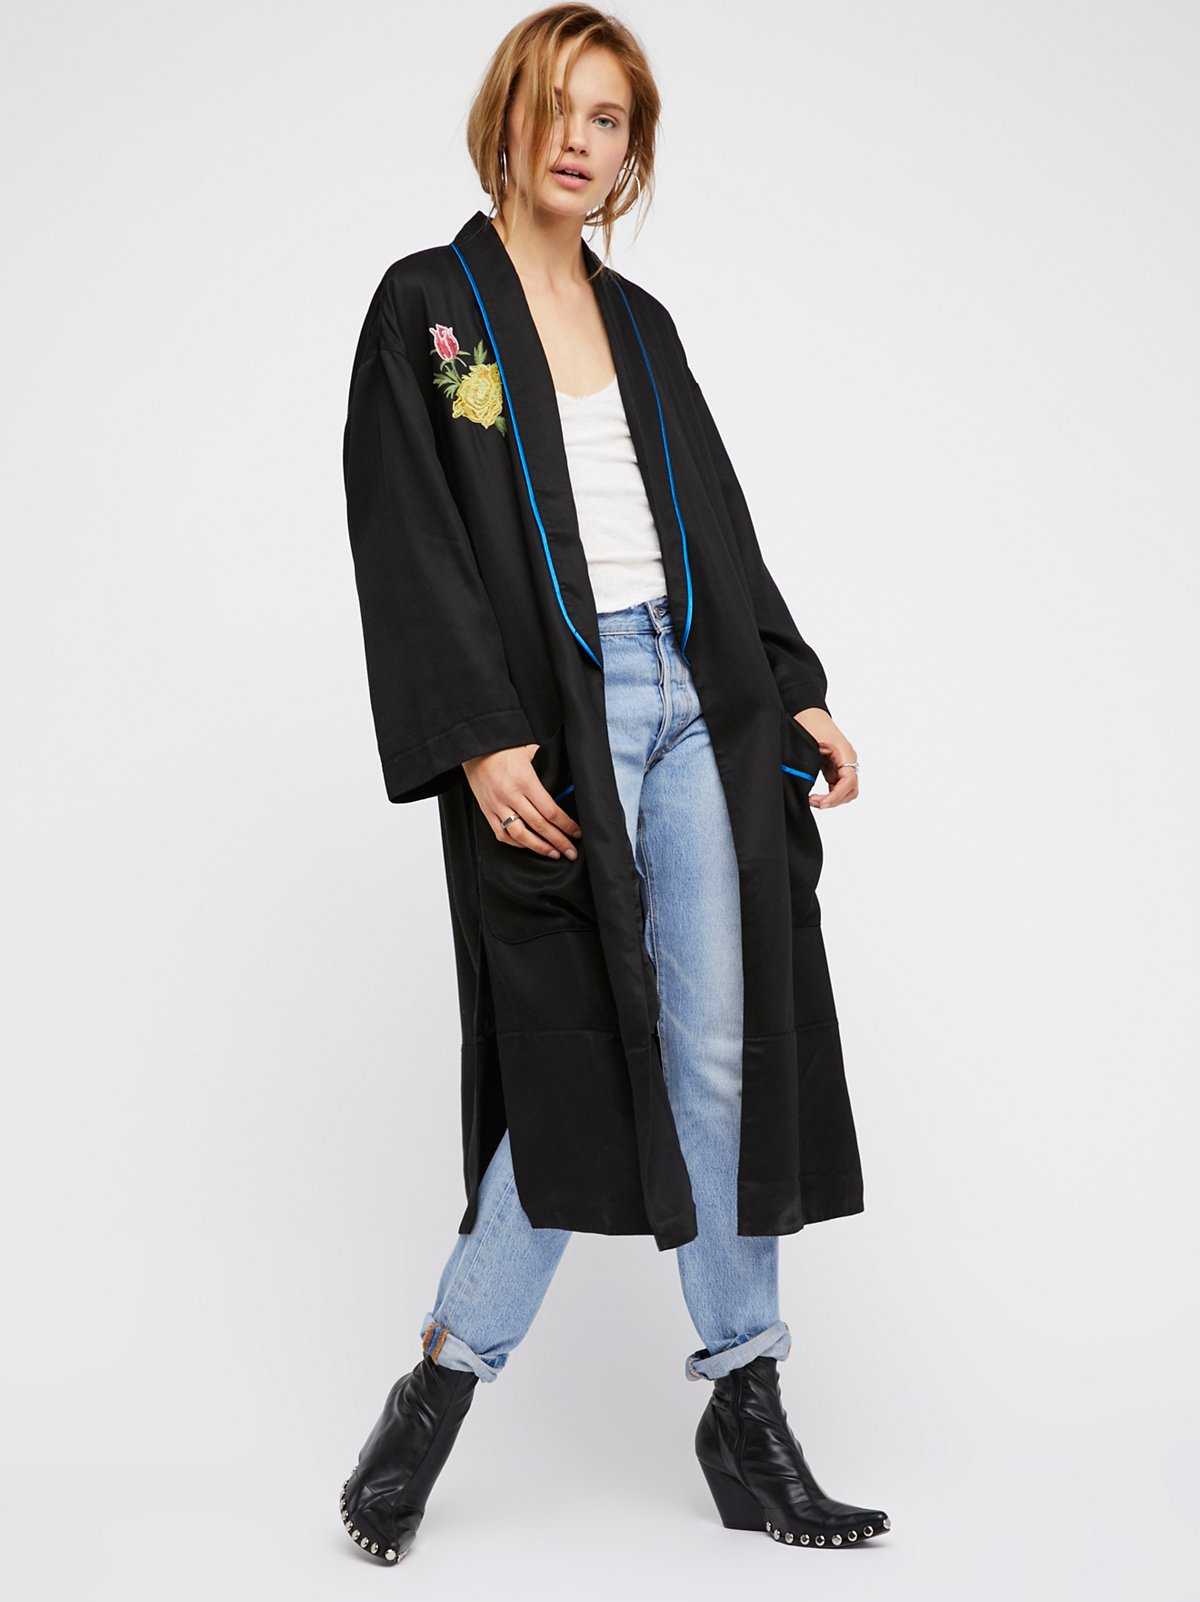 Sale Jackets & Outerwear for Women | Free People